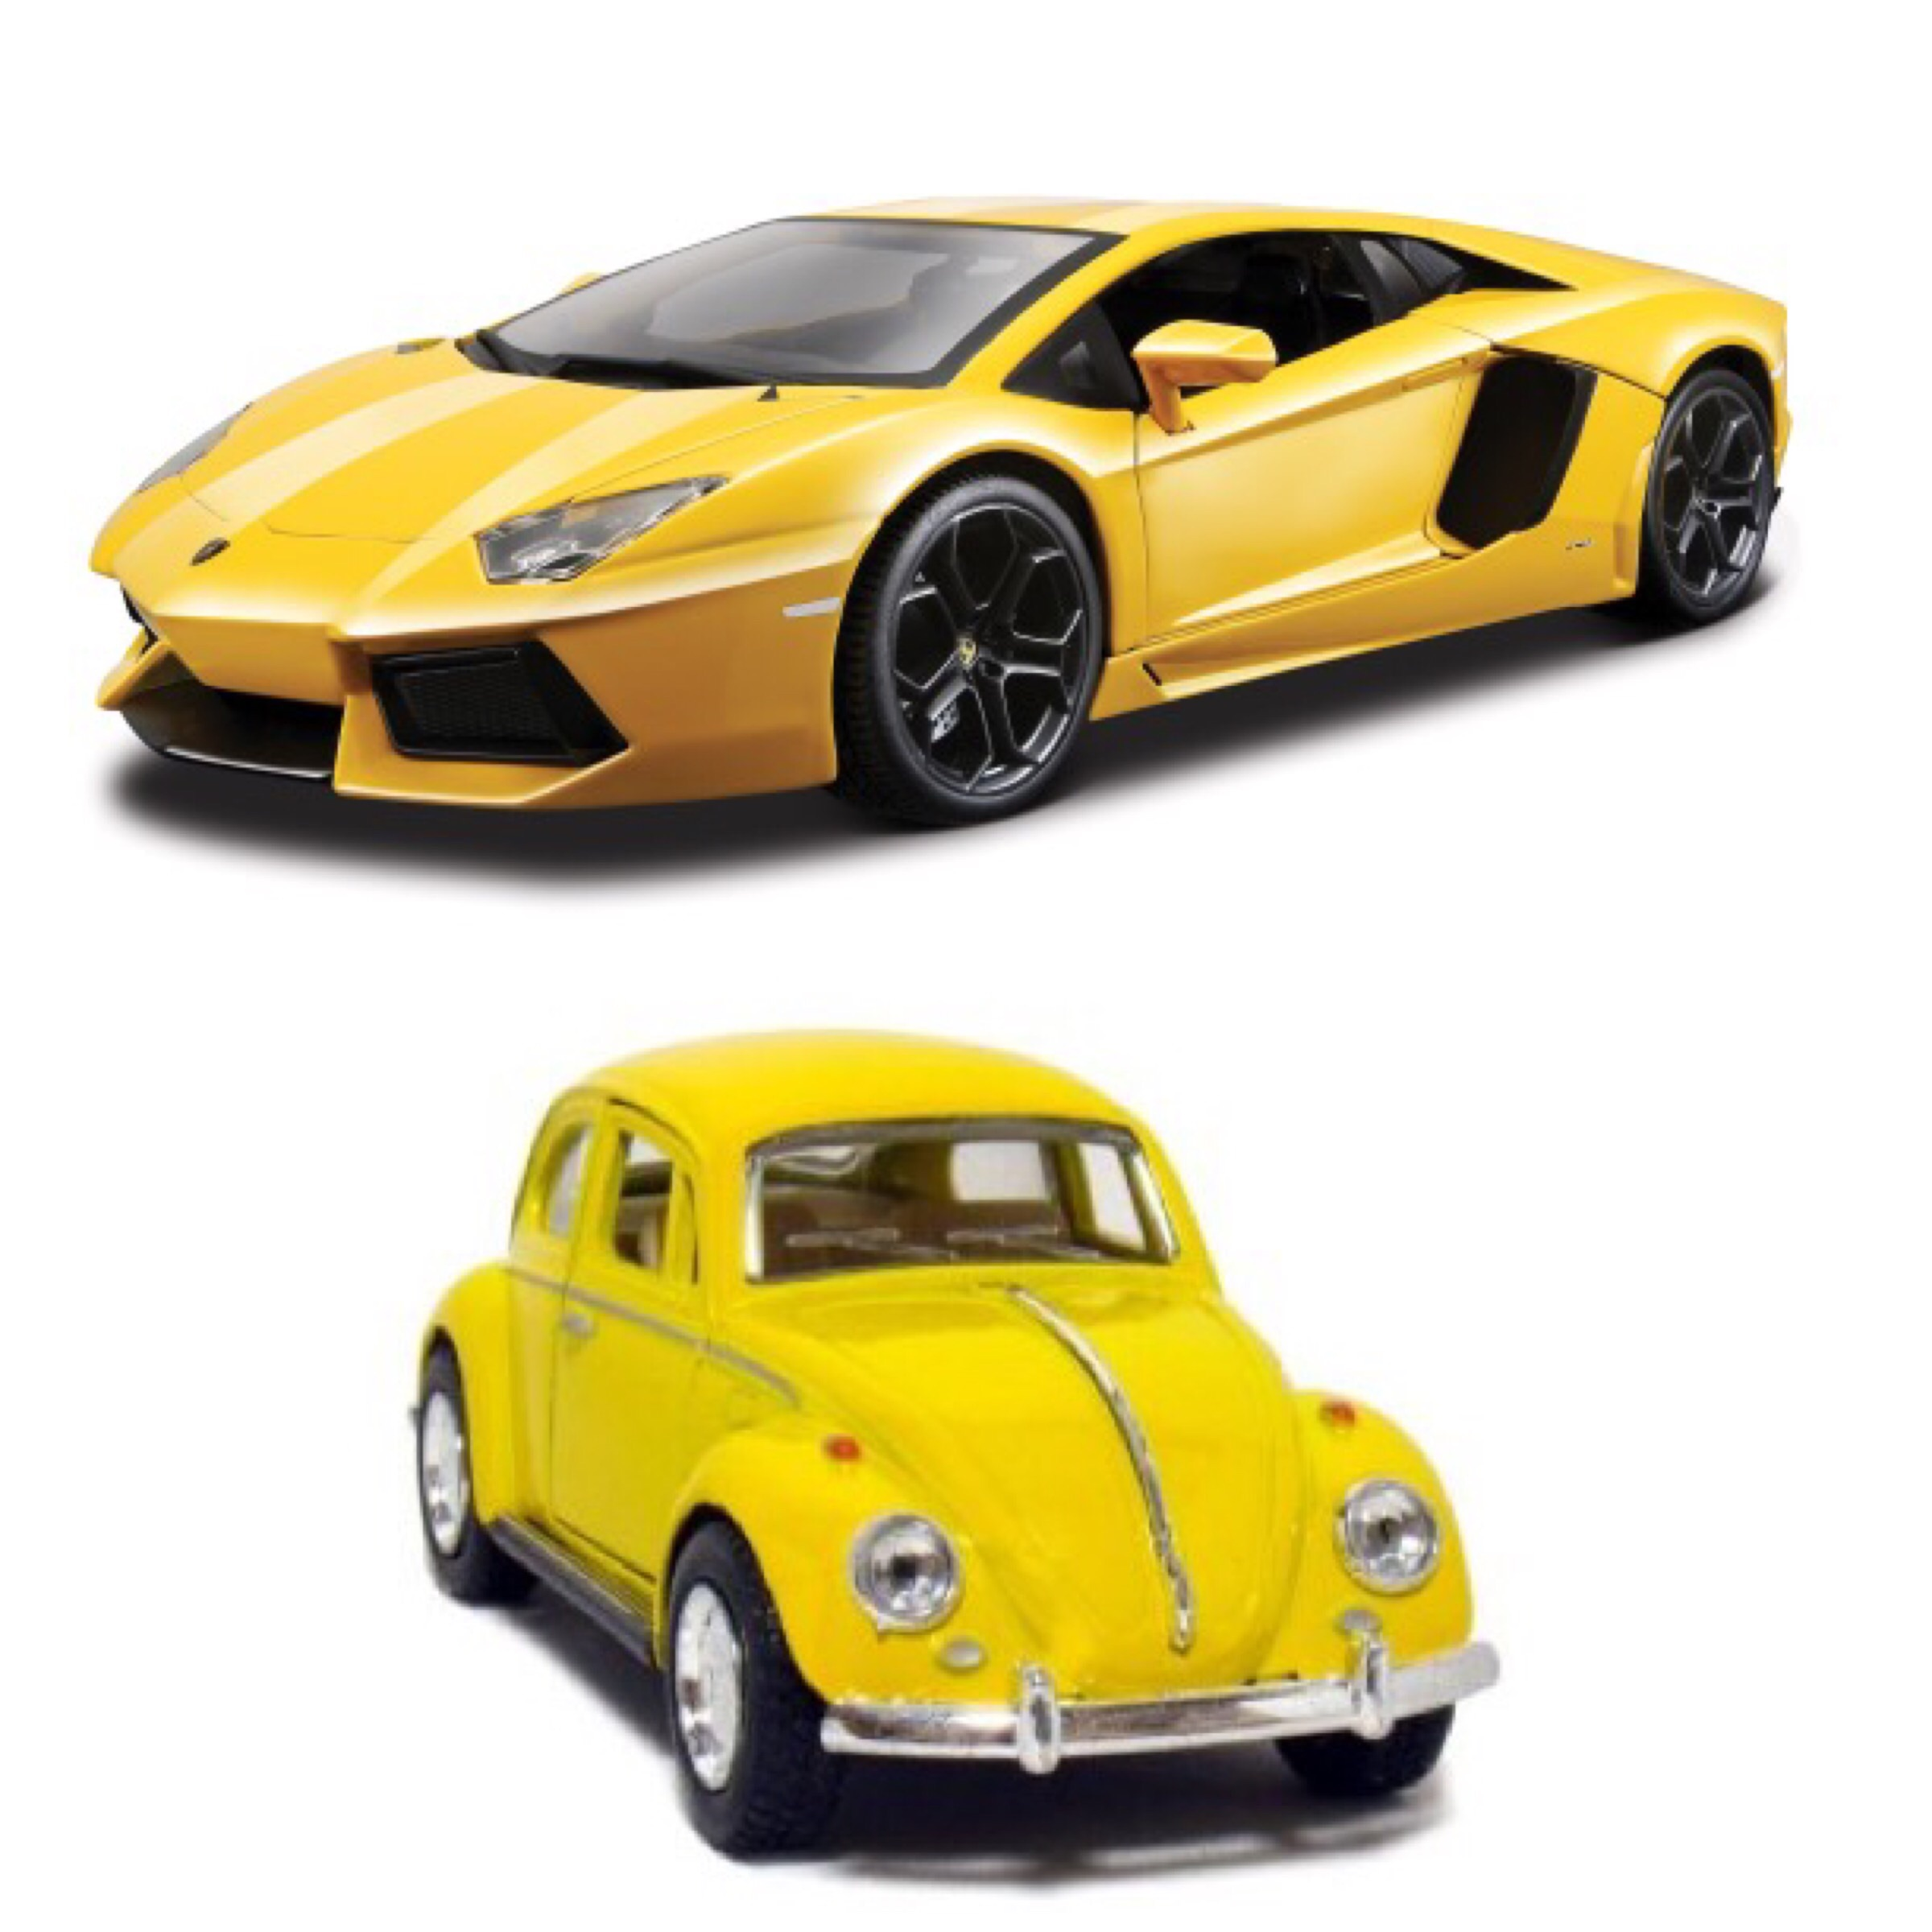 A common car and a sedentary car are one and the same A common car and a sedentary car are one and the same